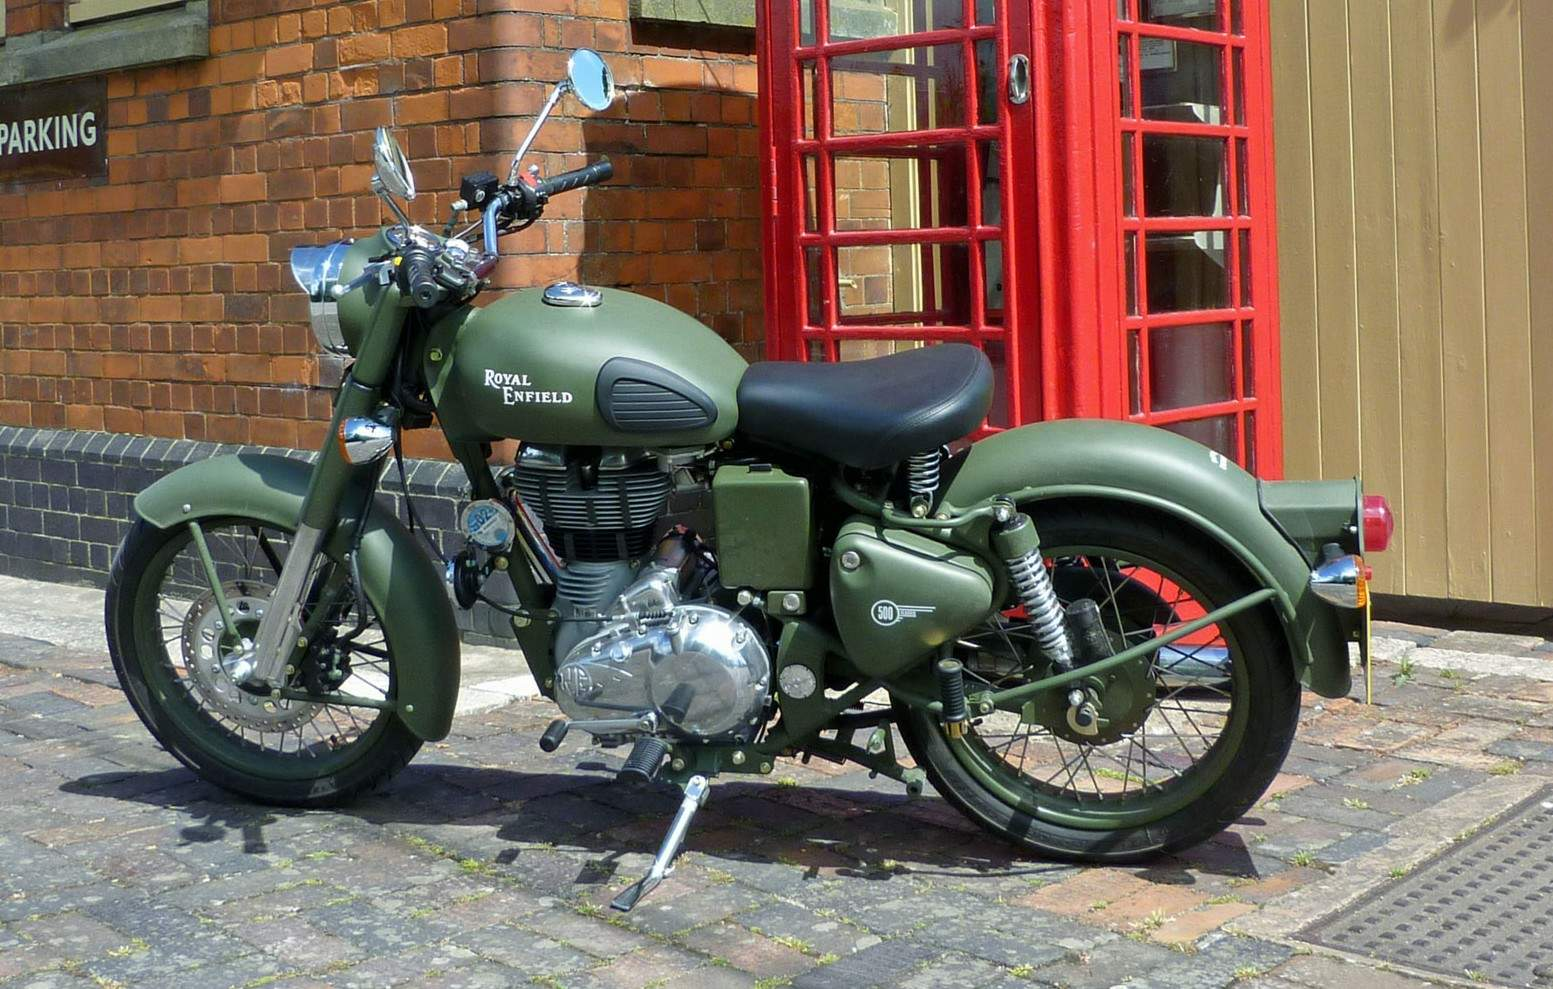 Royal enfield bullet pictures - Royal Enfield Bullet Pictures 39